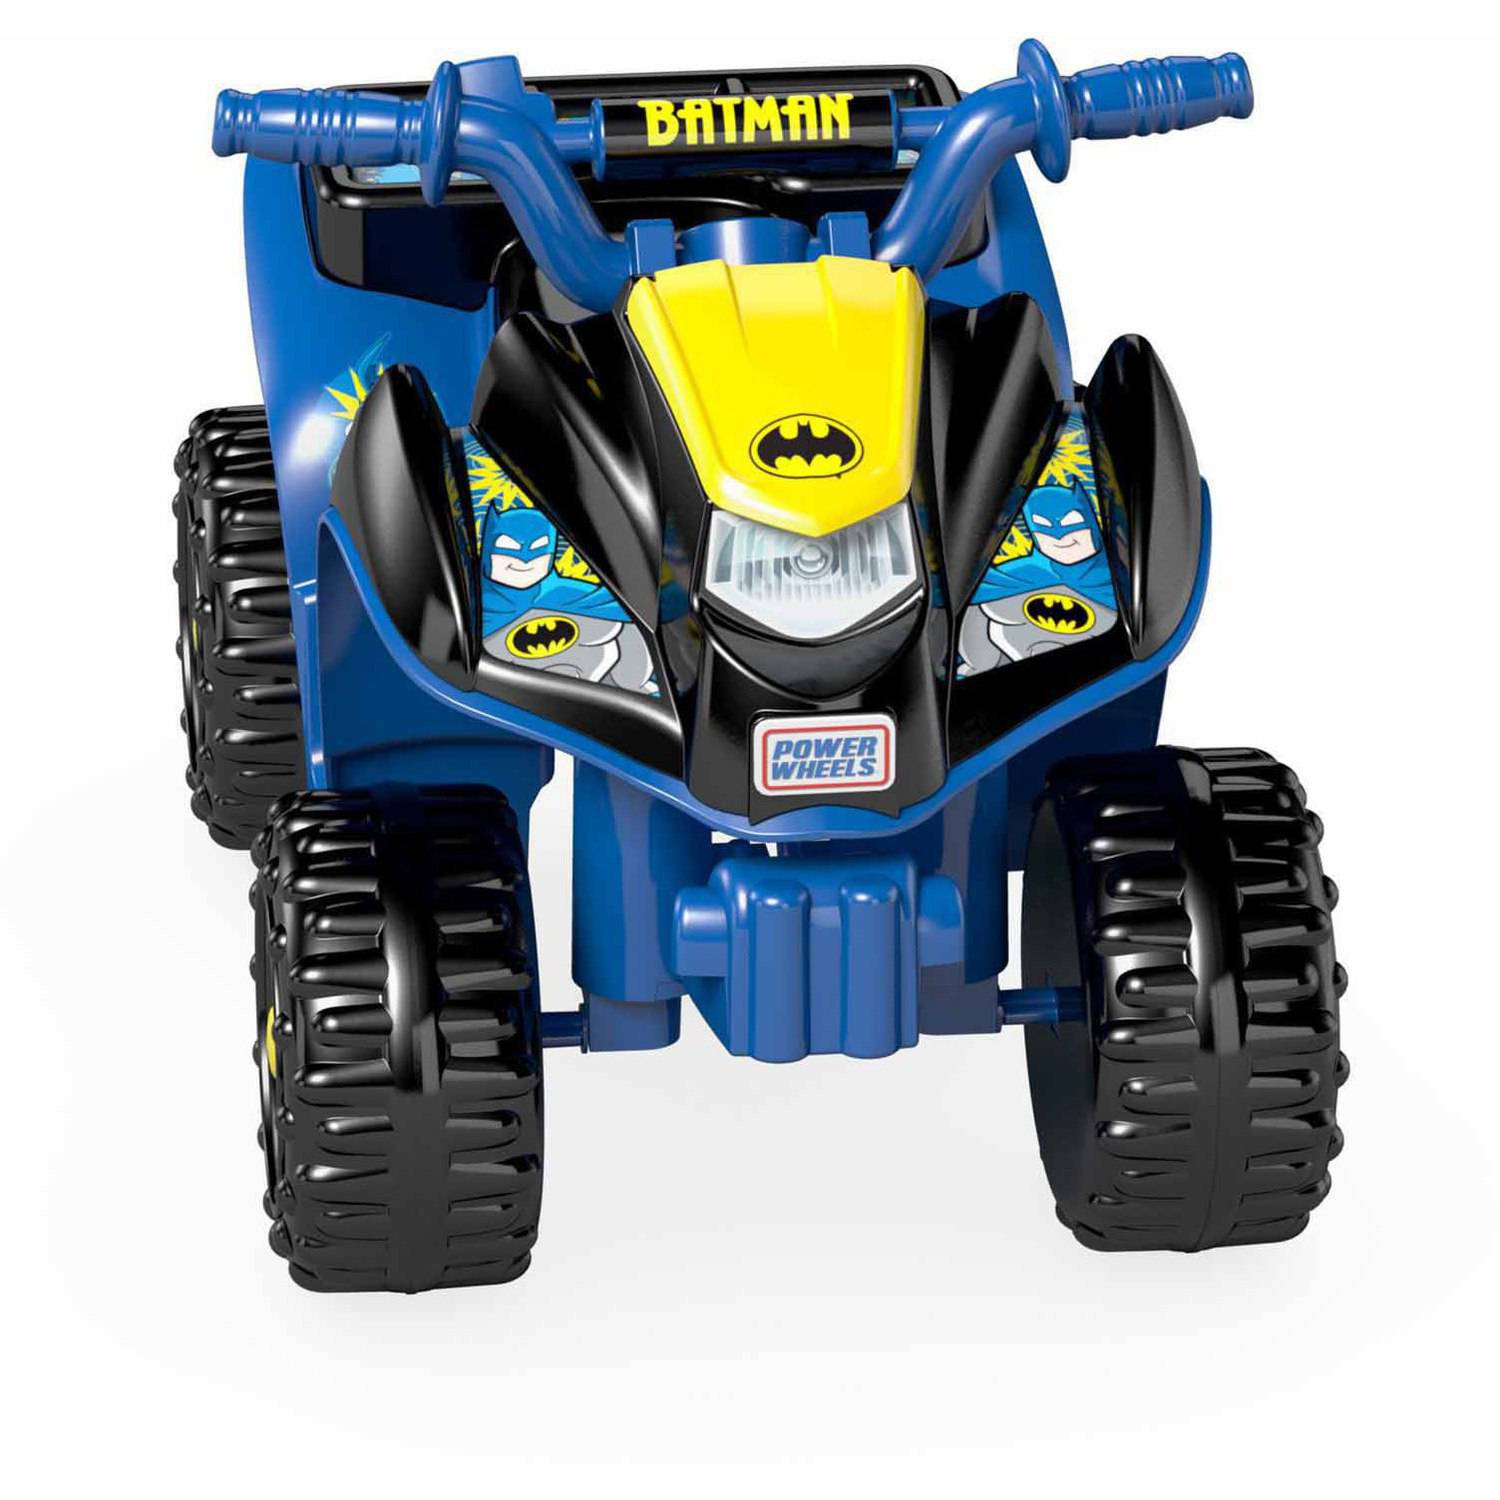 Power Wheels Batman Lil Quad Ride Walmart